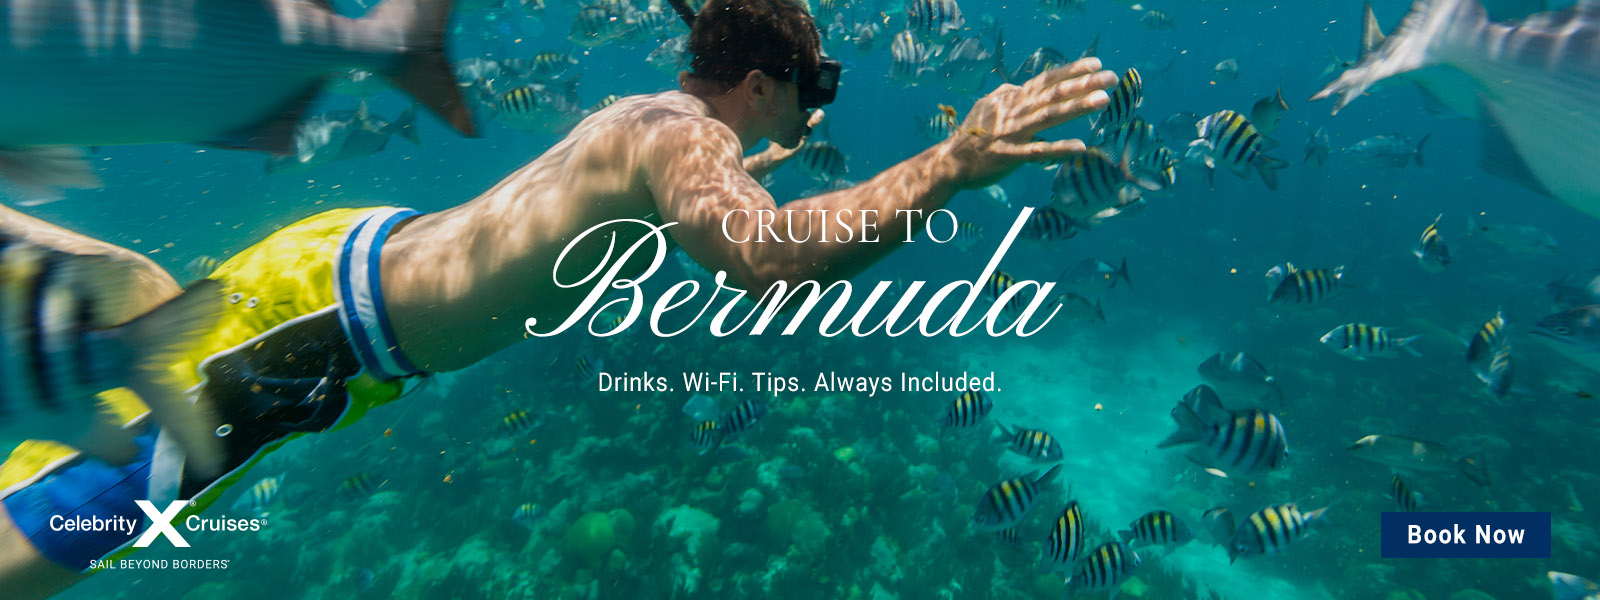 JBCruises Special Offers and Deals